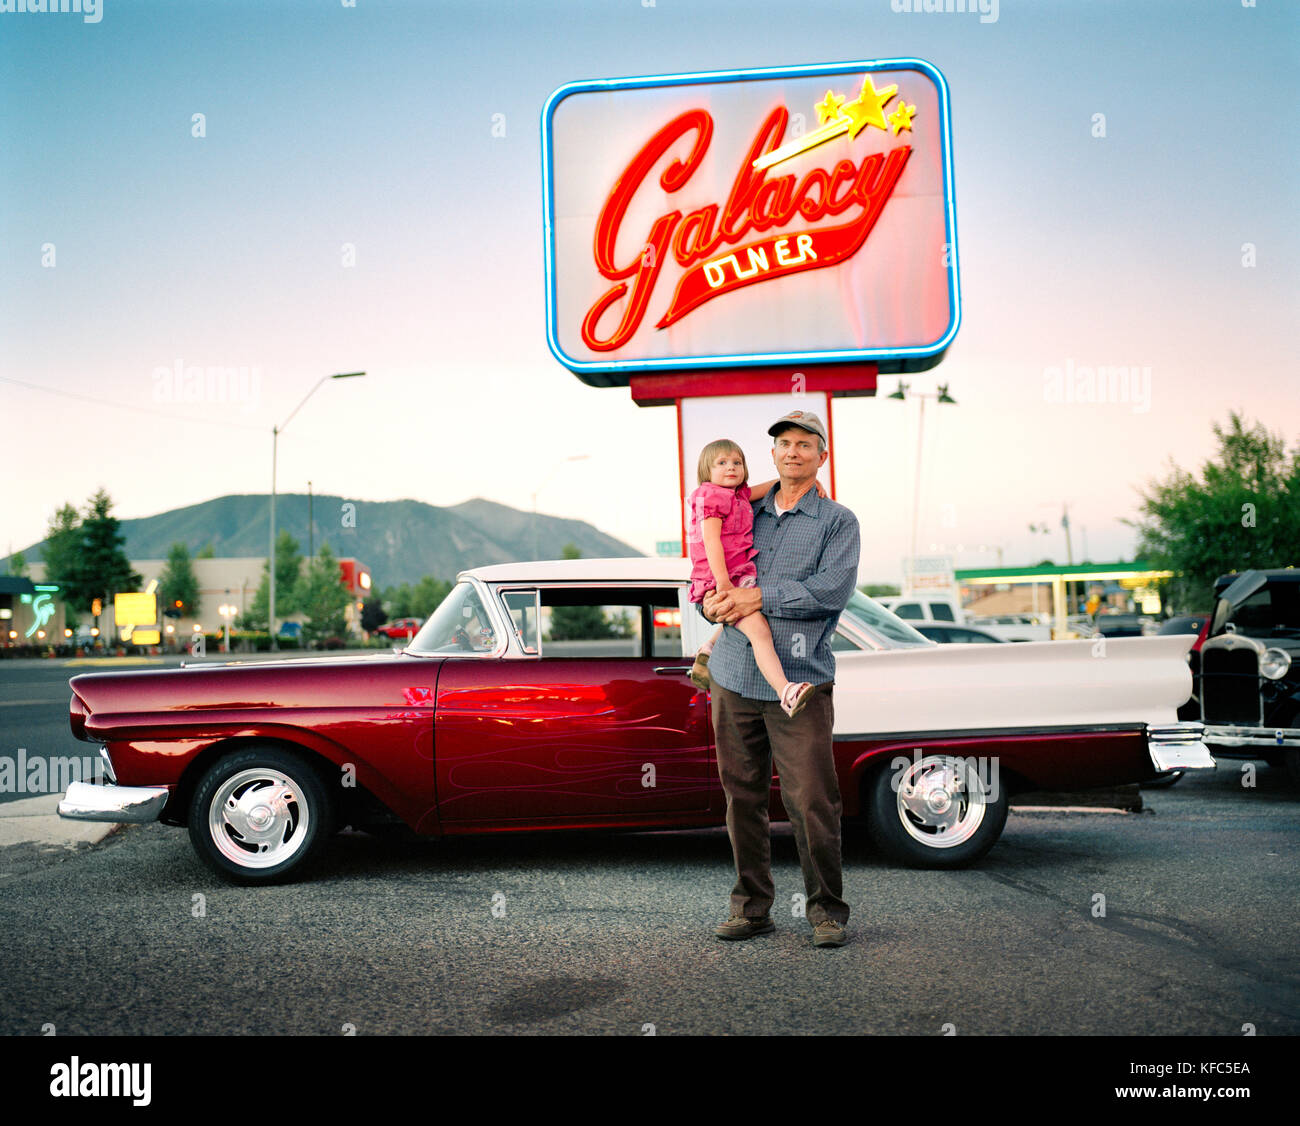 USA, Arizona, grandfather and granddaughter by ford fairlane, Galaxy Diner, Flagstaff - Stock Image